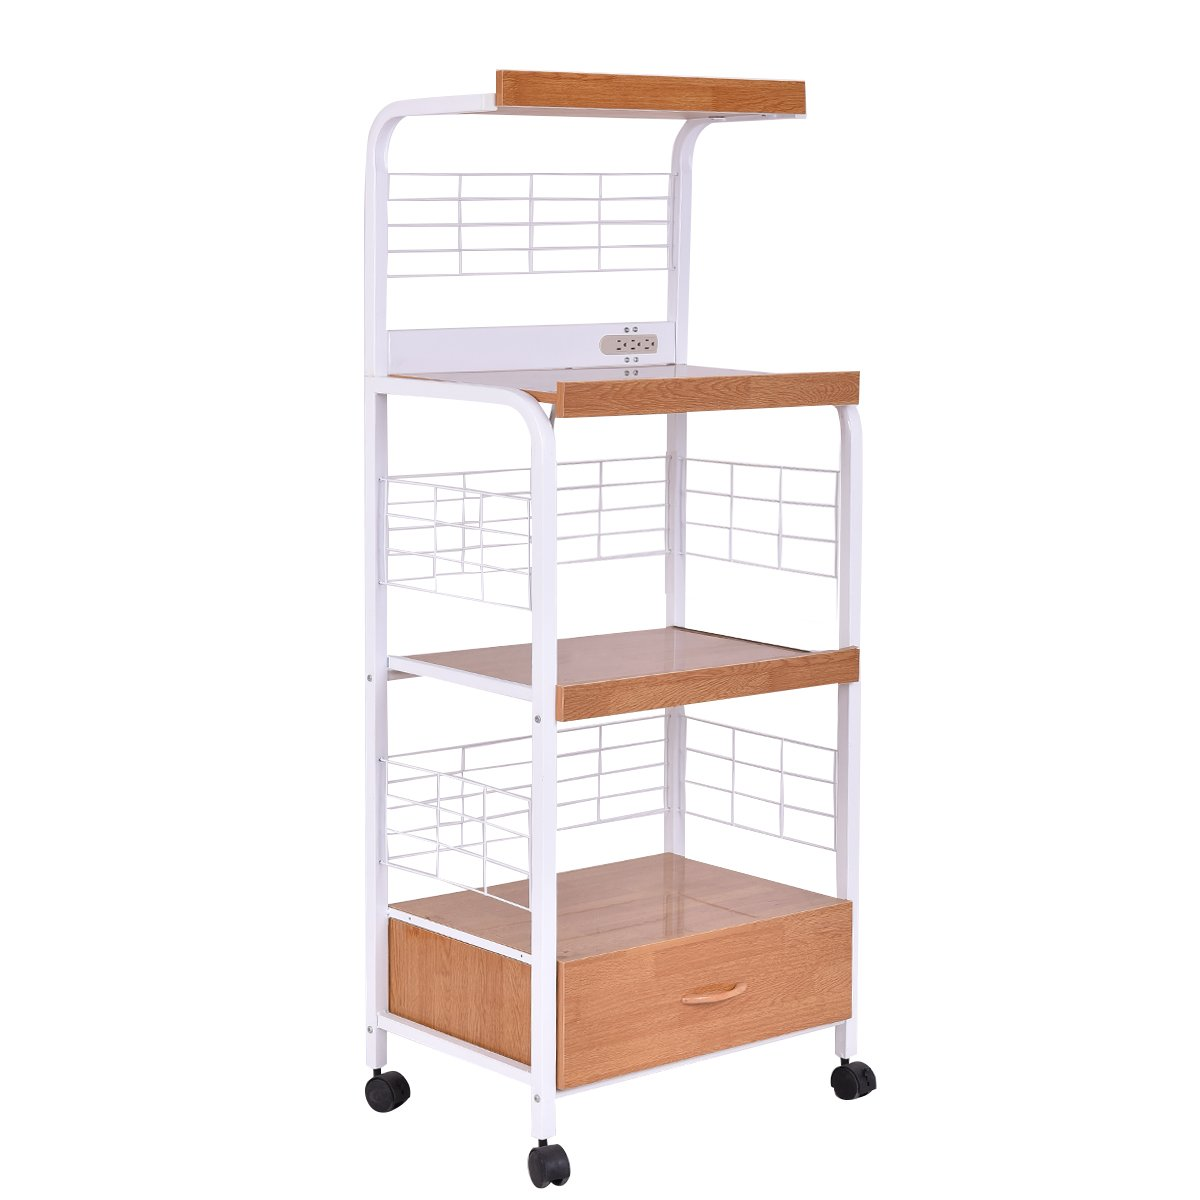 Giantex Microwave Cart Kitchen Bakers Rack Microwave Oven Stand Rolling Kitchen Storage Cart Utensils Organizer w/Electric Outlet and Drawer